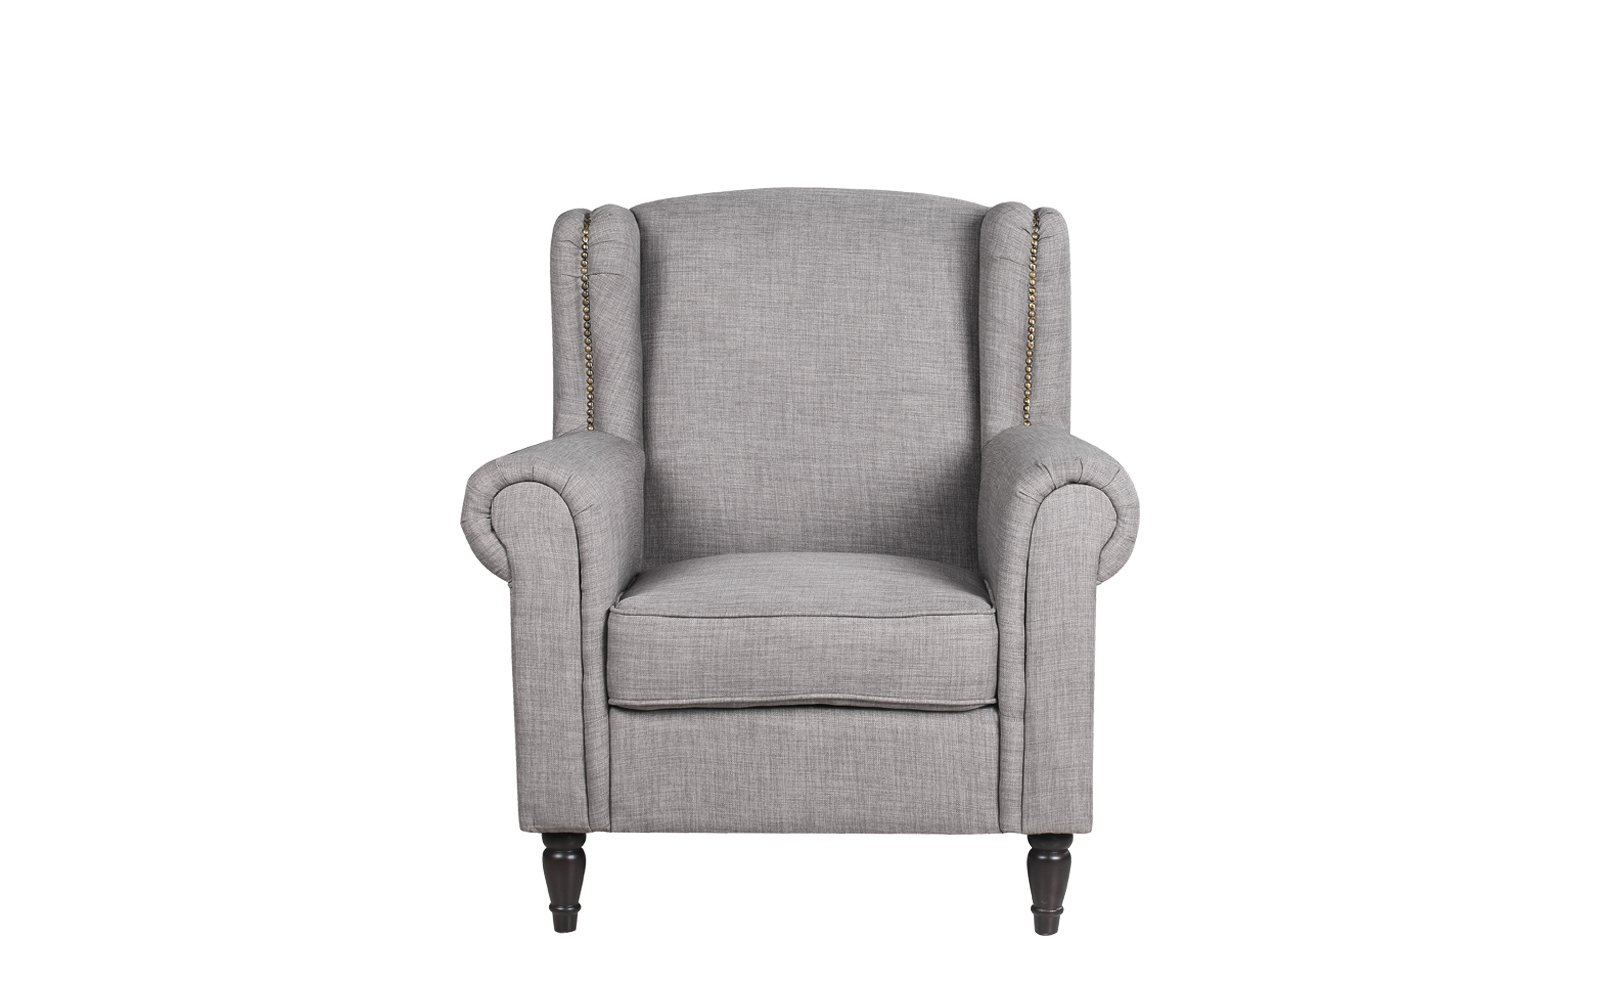 galway classic scroll arm linen accent chair sofamania lgy linon table white light grey front black metal outdoor coffee pier dining and chairs uttermost gin cube kenzie inch